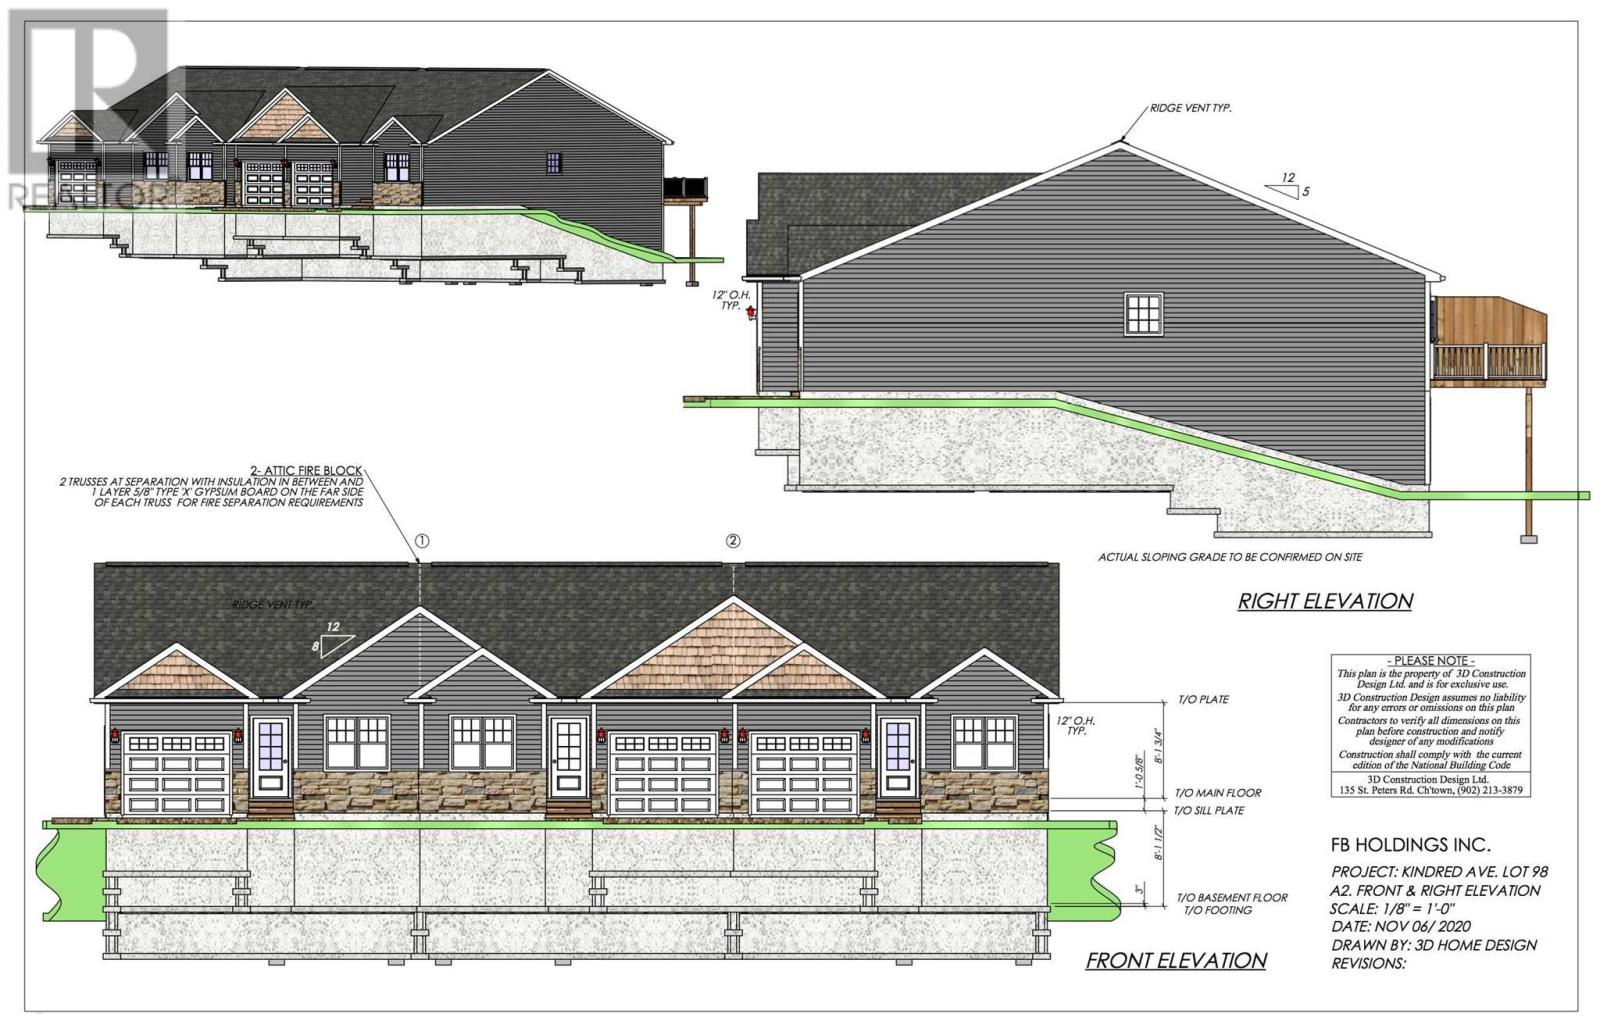 2 TBD Kindred Avenue2 TBD Kindred Avenue, East Royalty, Prince Edward Island C1C1S8, 3 Bedrooms Bedrooms, ,3 BathroomsBathrooms,Single Family,For Sale,2 TBD Kindred Avenue,202120005